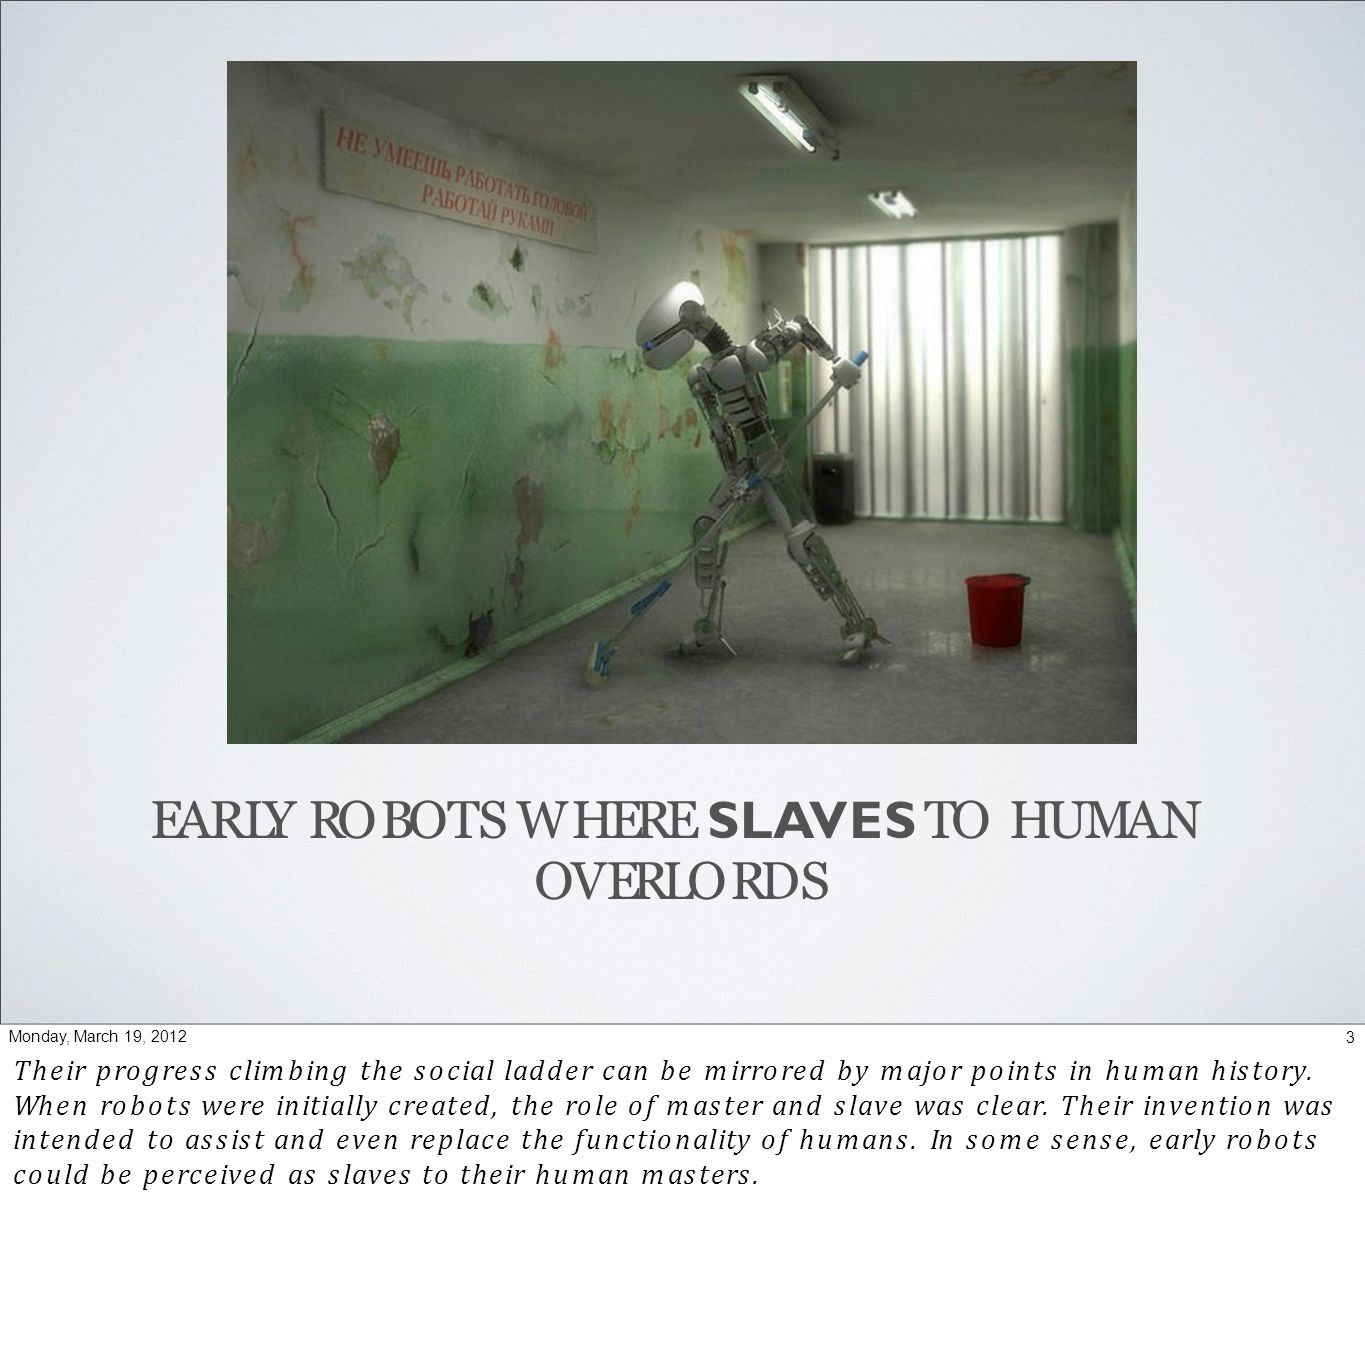 EARLY ROBOTS WHERE SLAVES TO HUMAN OVERLORDS 3Monday, March 19, 2012 Their progress climbing the social ladder can be mirrored by major points in human history.